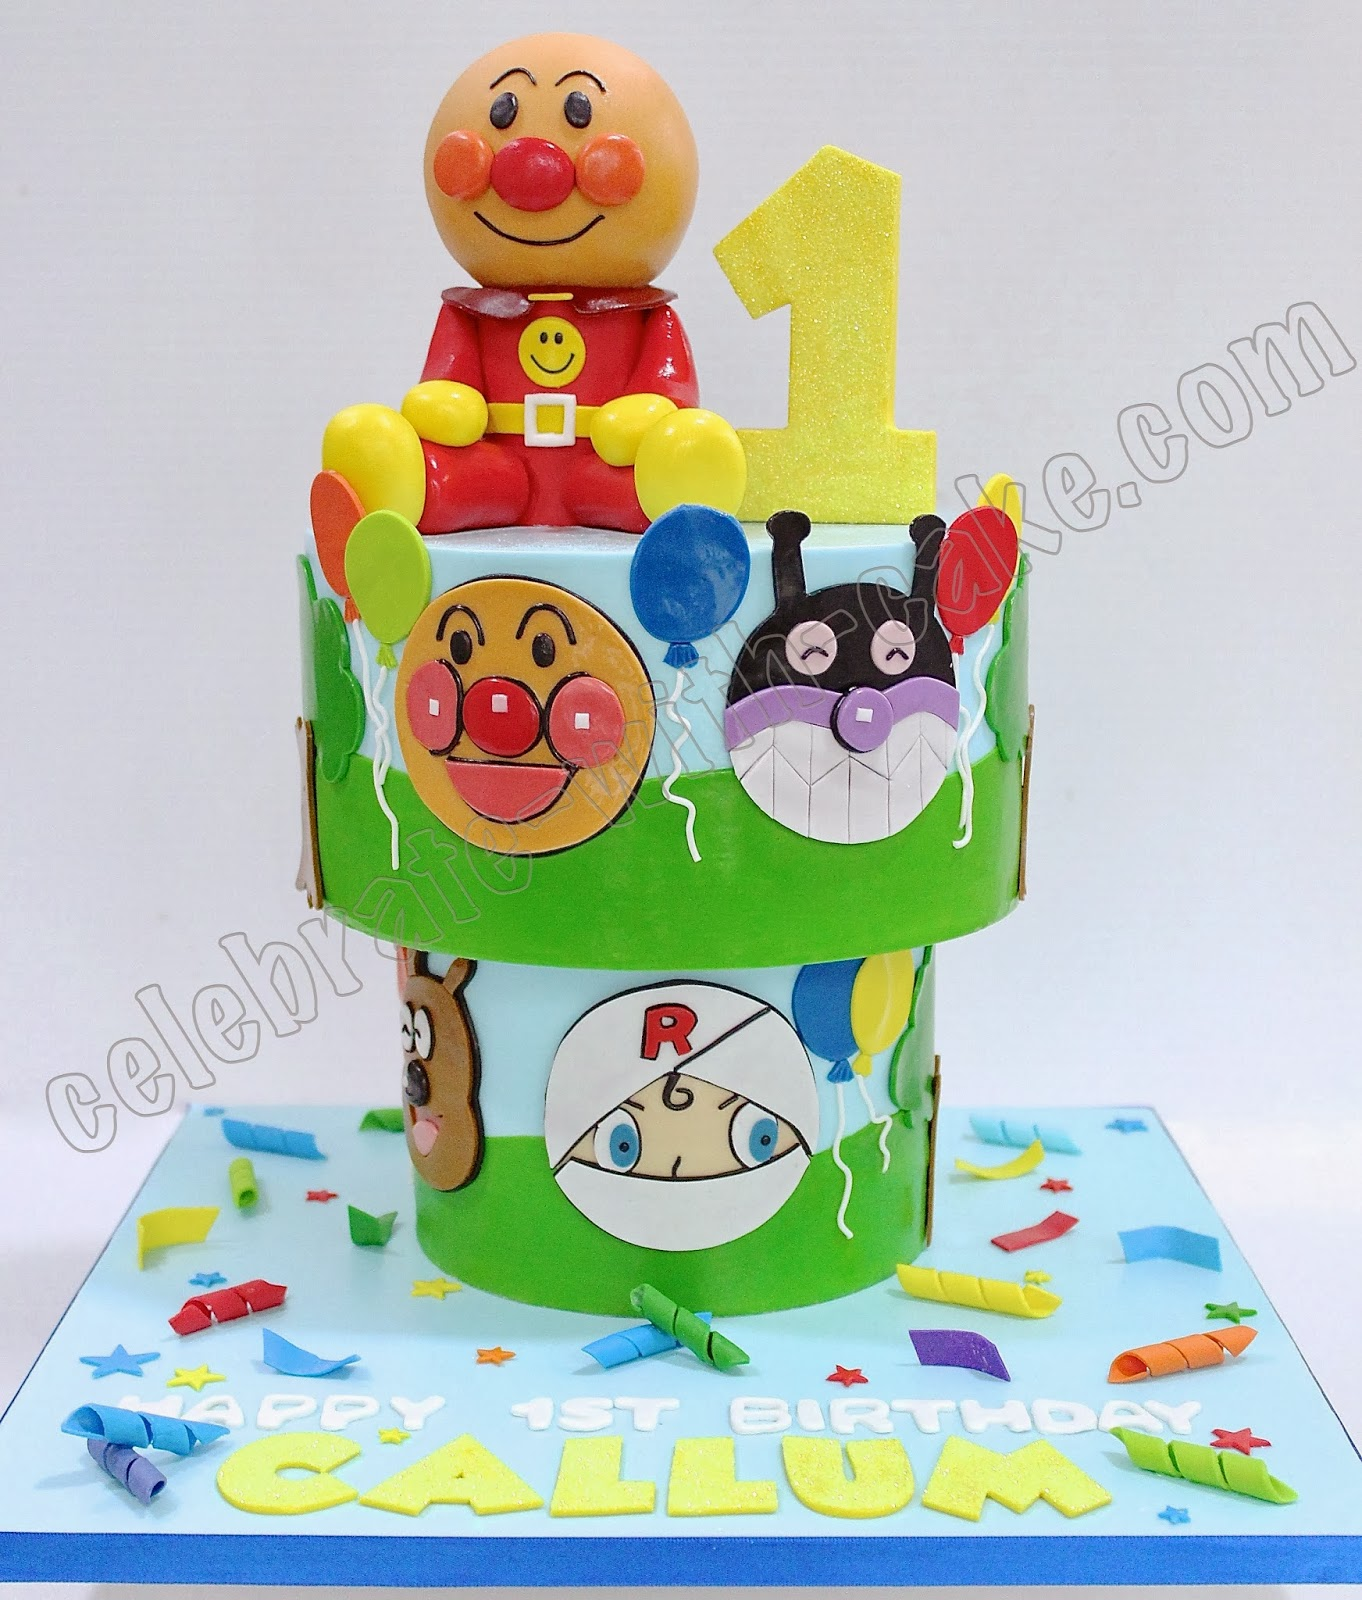 Celebrate With Cake Anpanman Upside Down